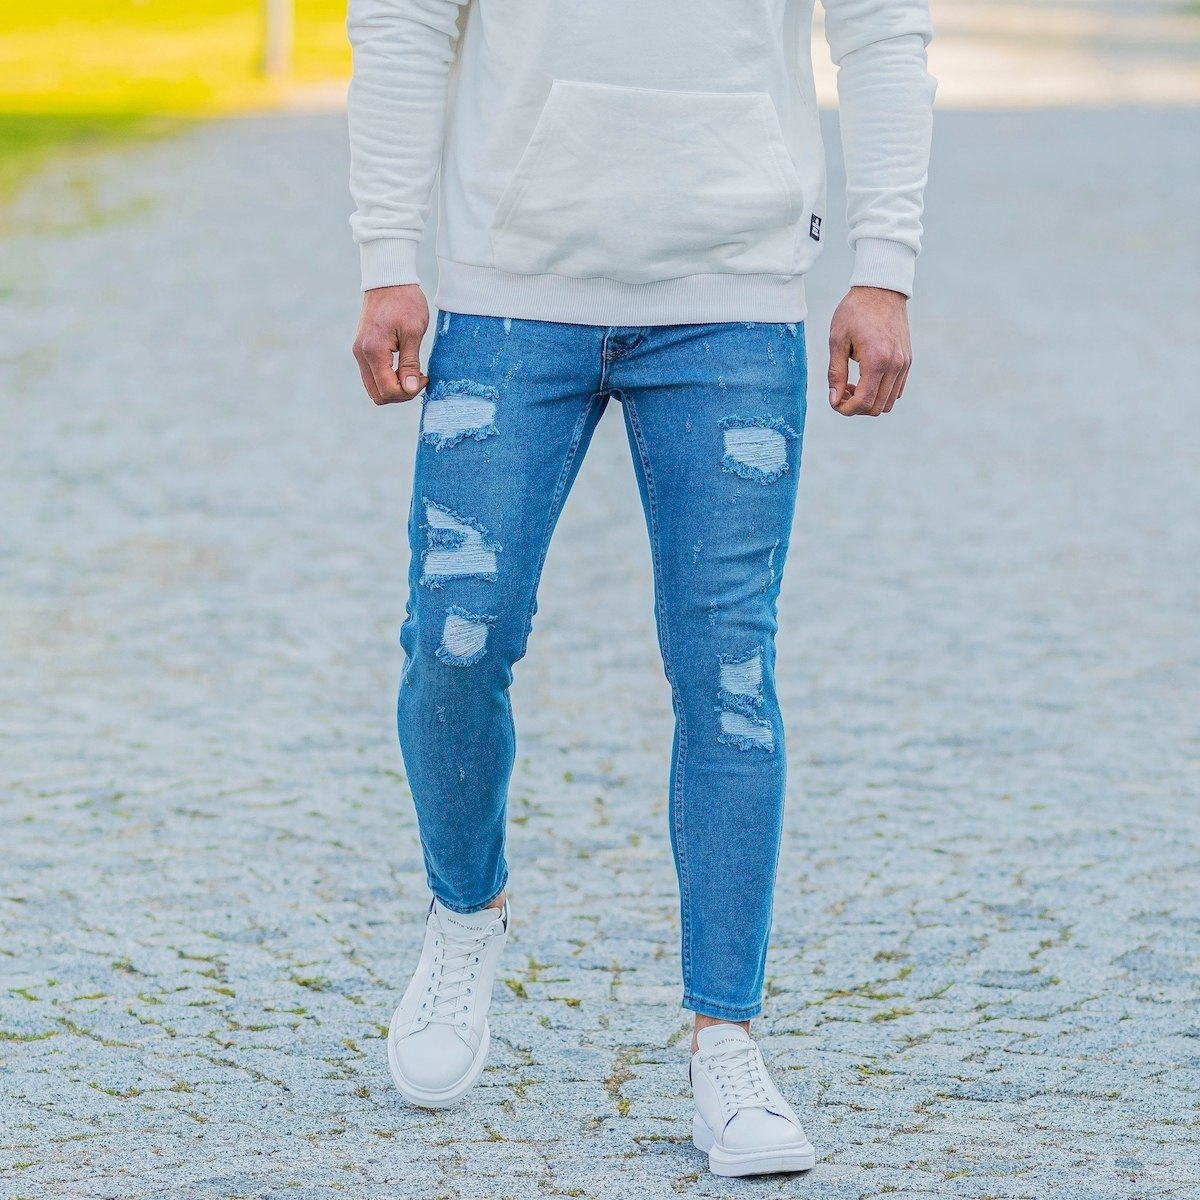 Men's Skinny Ragged Jeans In Blue